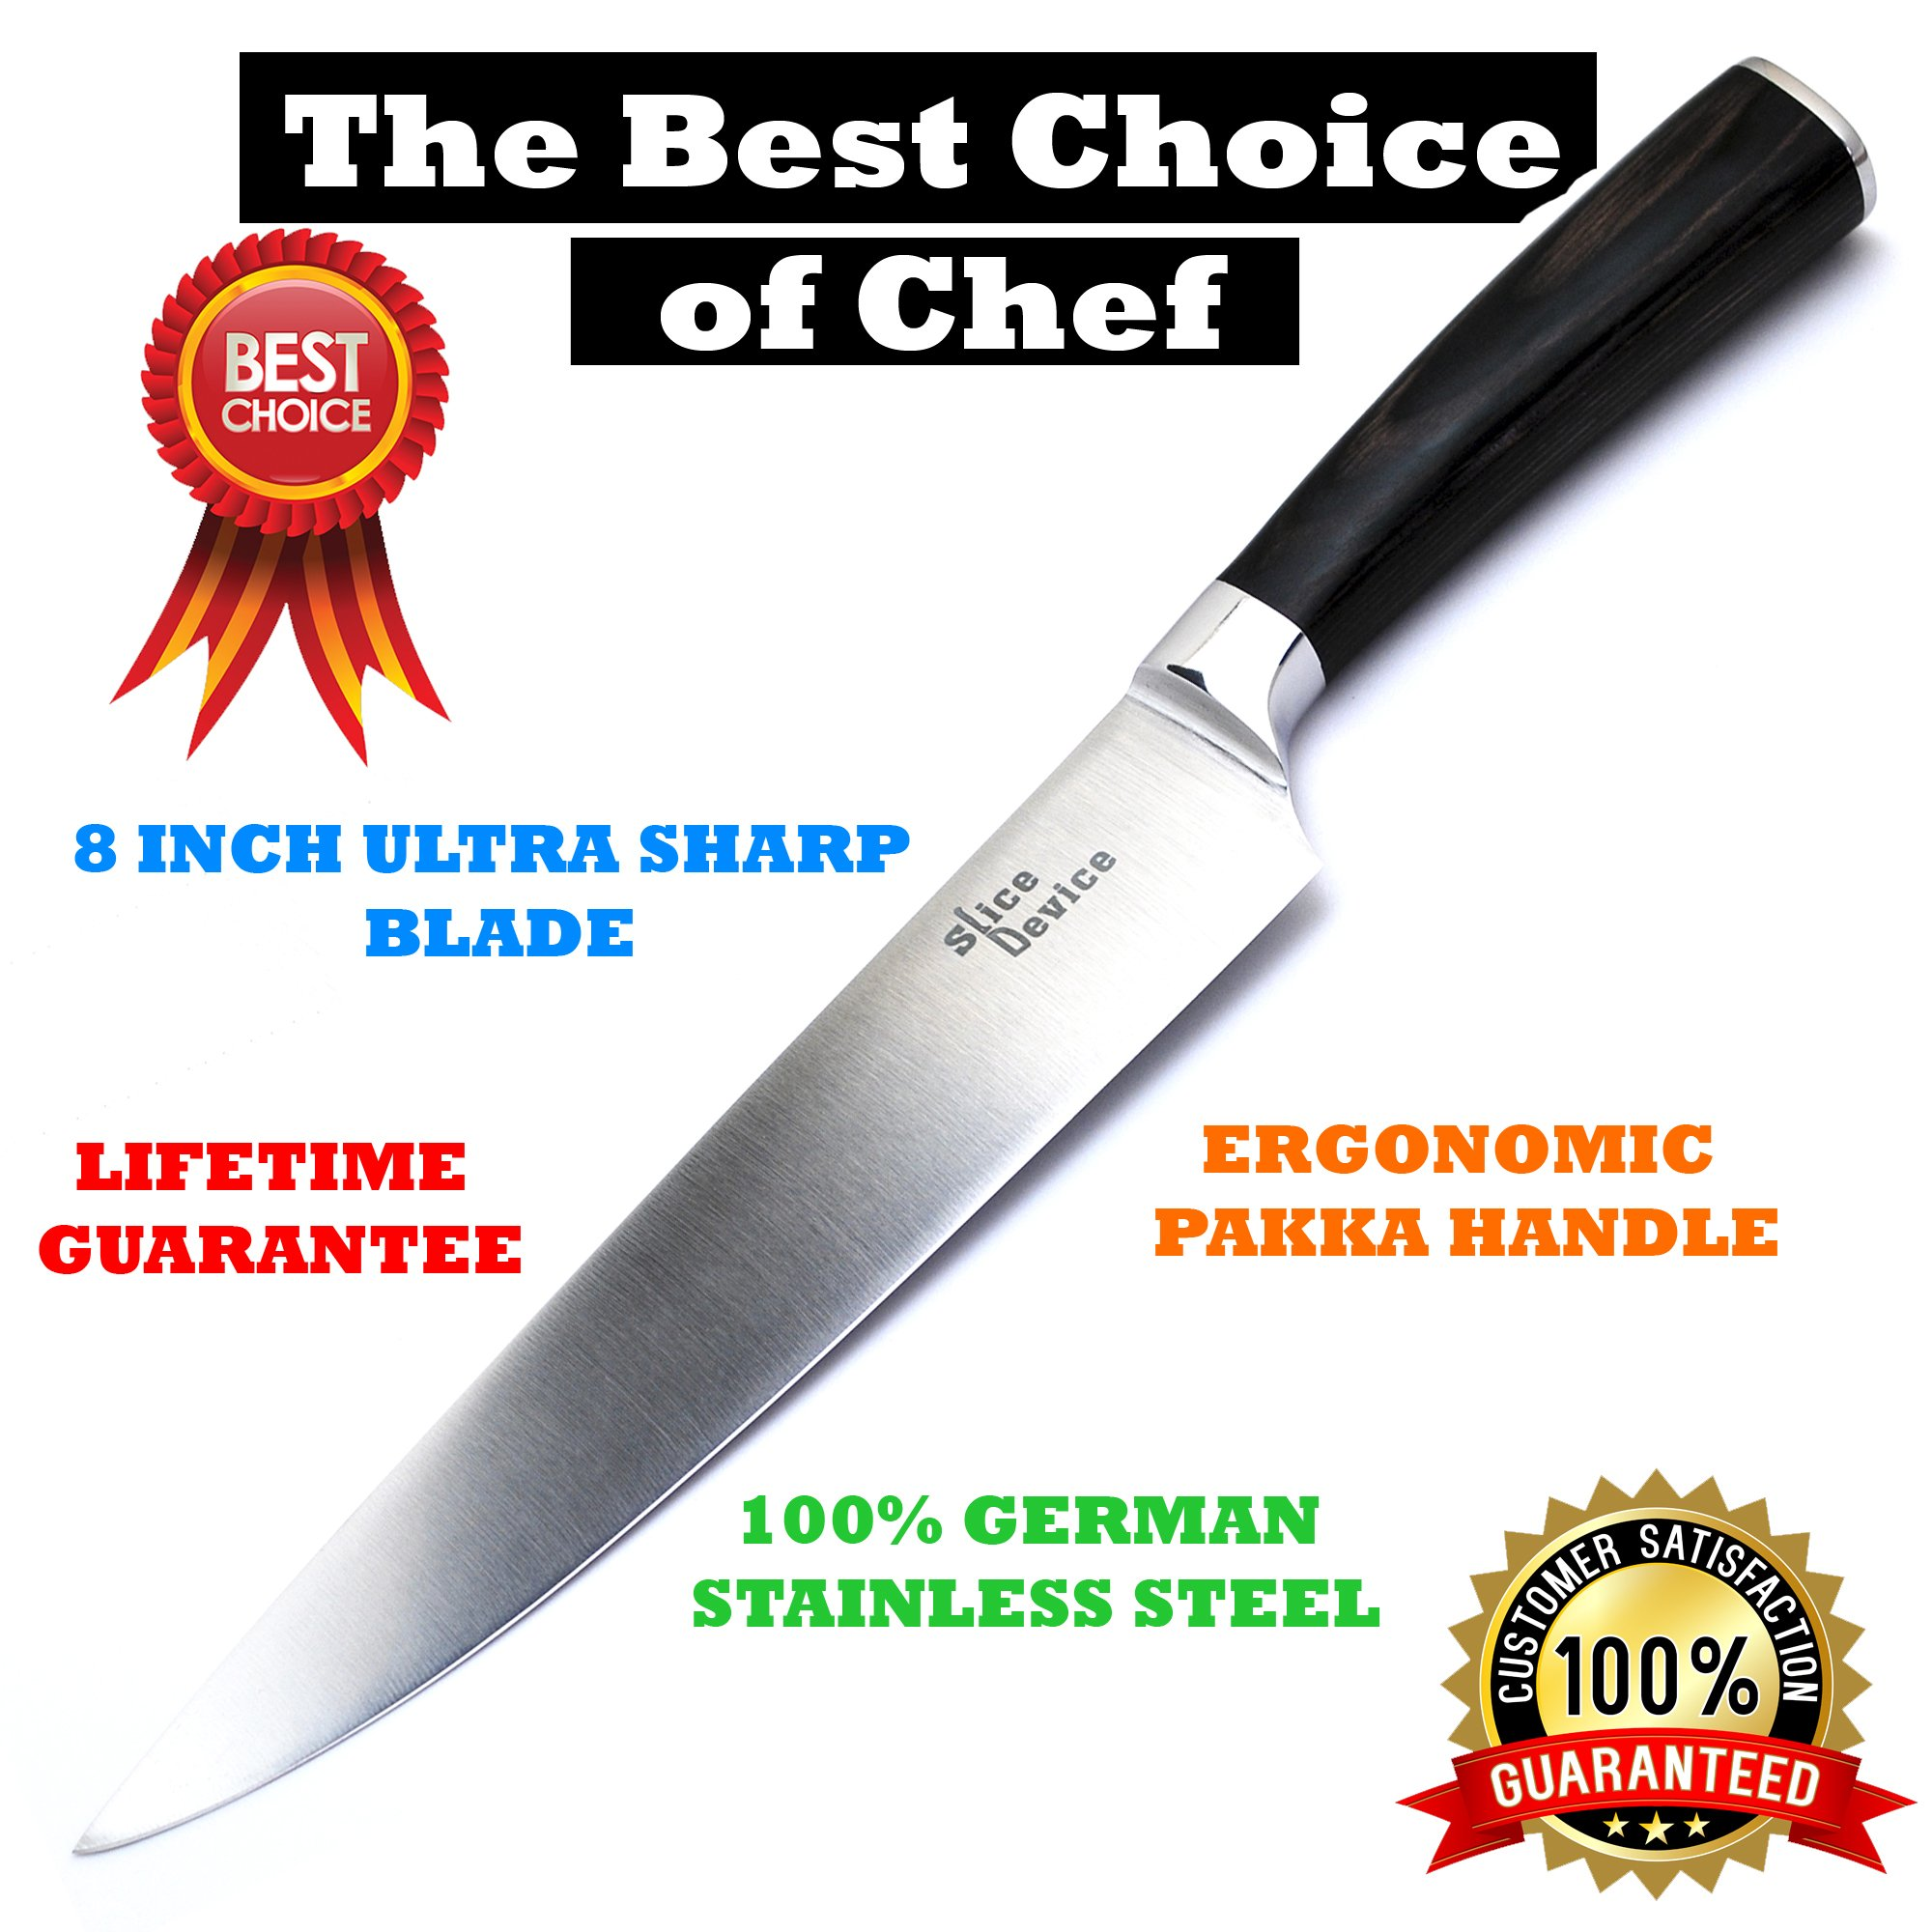 SliceDevice - 8 Inch Professional Chef Knife - Best Cutting Knife for Meat - Ultra Sharp Blade - German Stainless Steel - Comfortable Handle - Chopping Salads or Fruit - Kitchen Knife Set - GIFT BOX